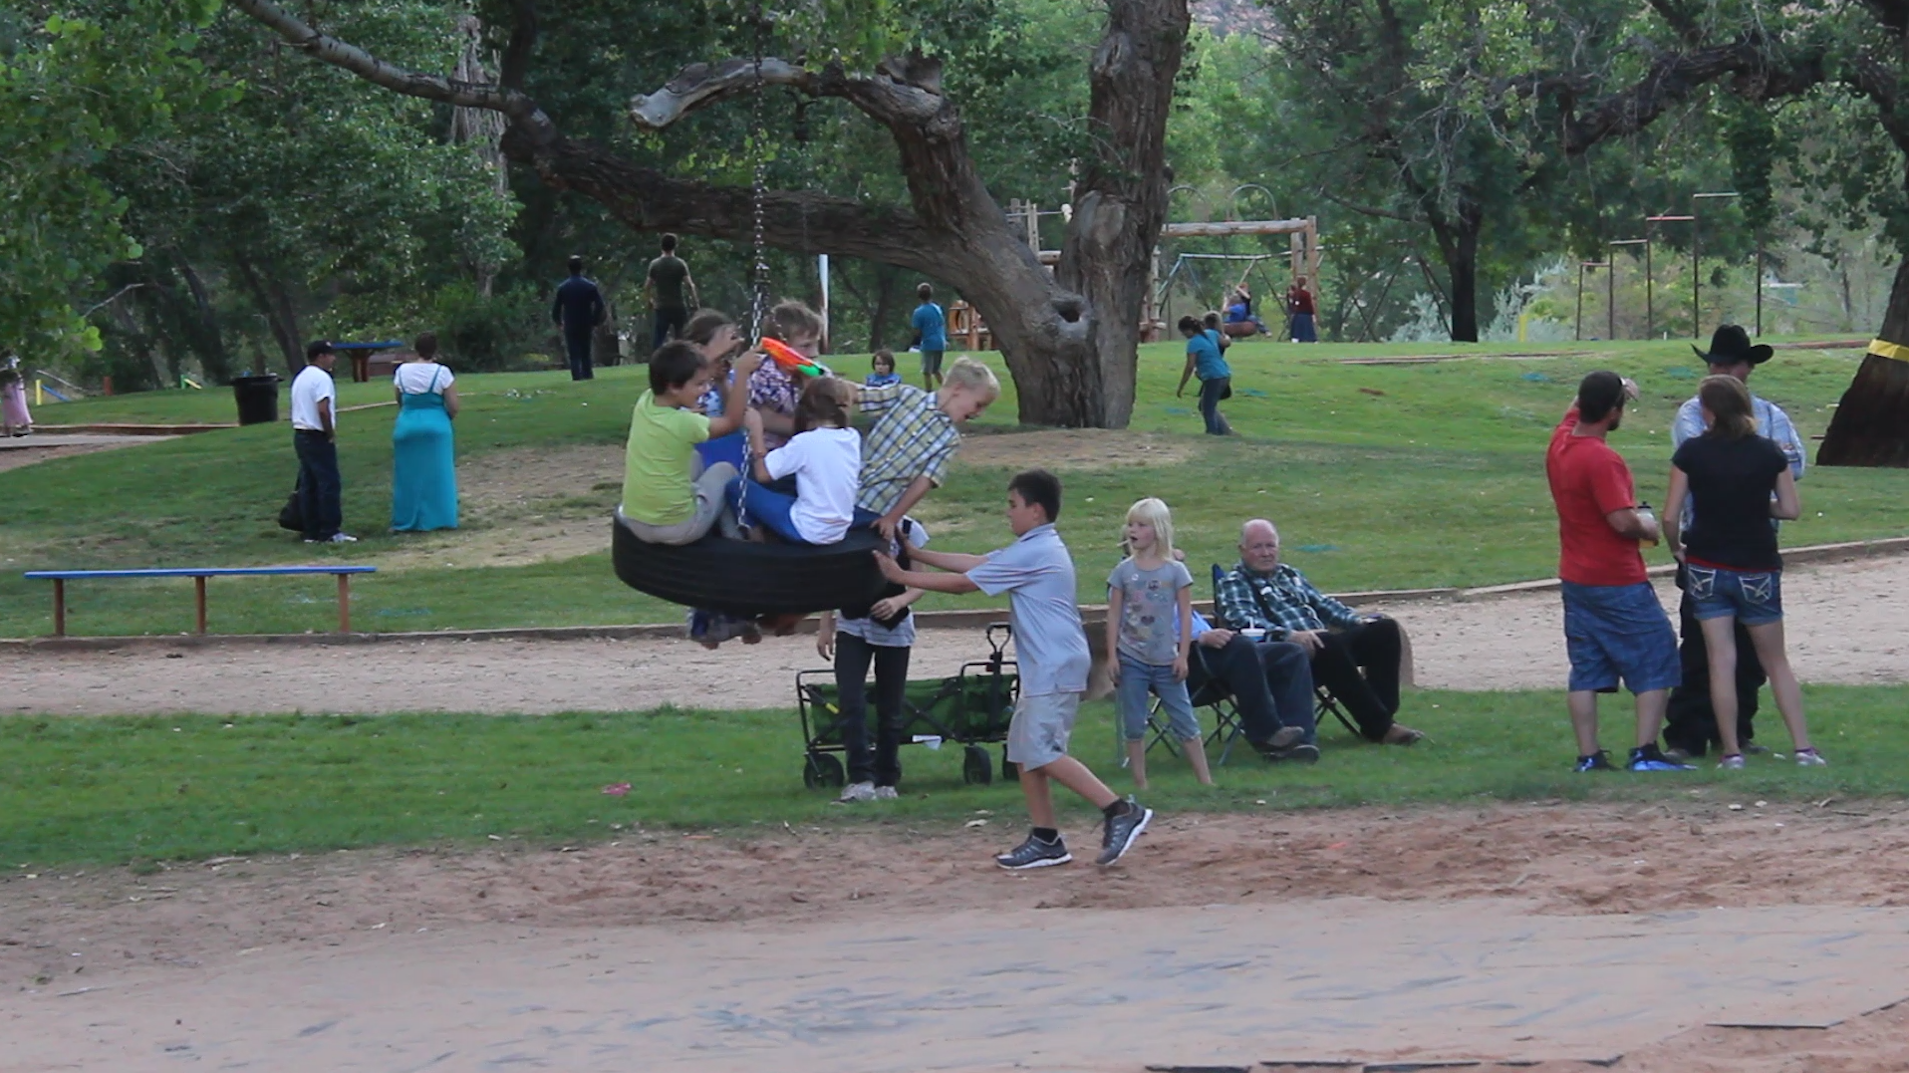 Children play at Cottonwood Park in the biggest celebration the town has seen in 13 years, Colorado City, Arizona, July 4, 2015 | Photo by Nataly Burdick